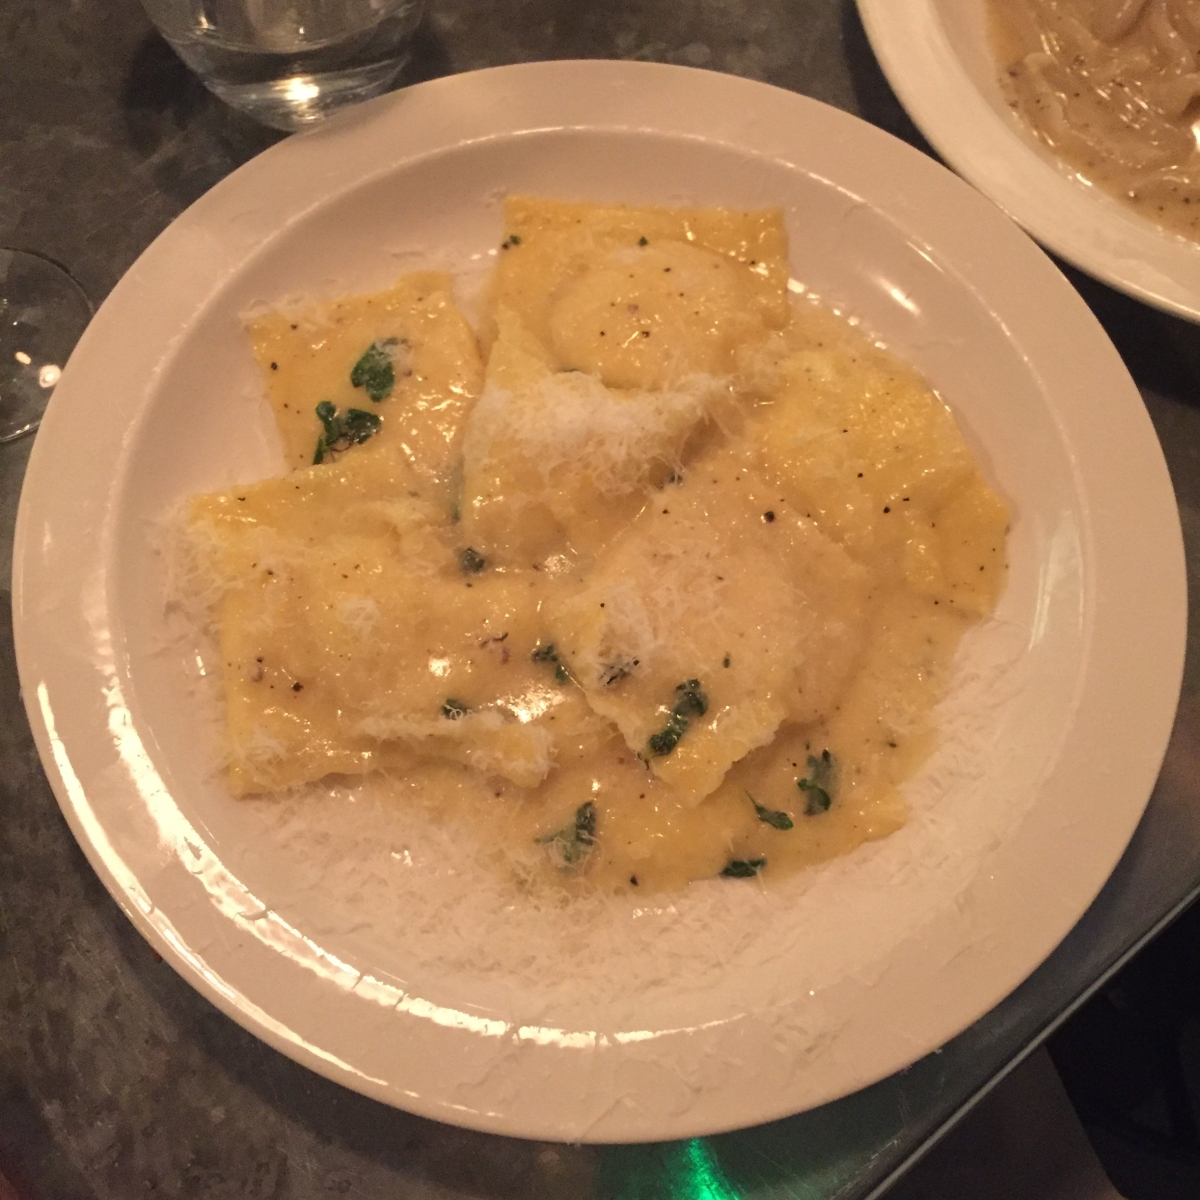 Ravioli of Neal's Yard goats curd with marjoram butter